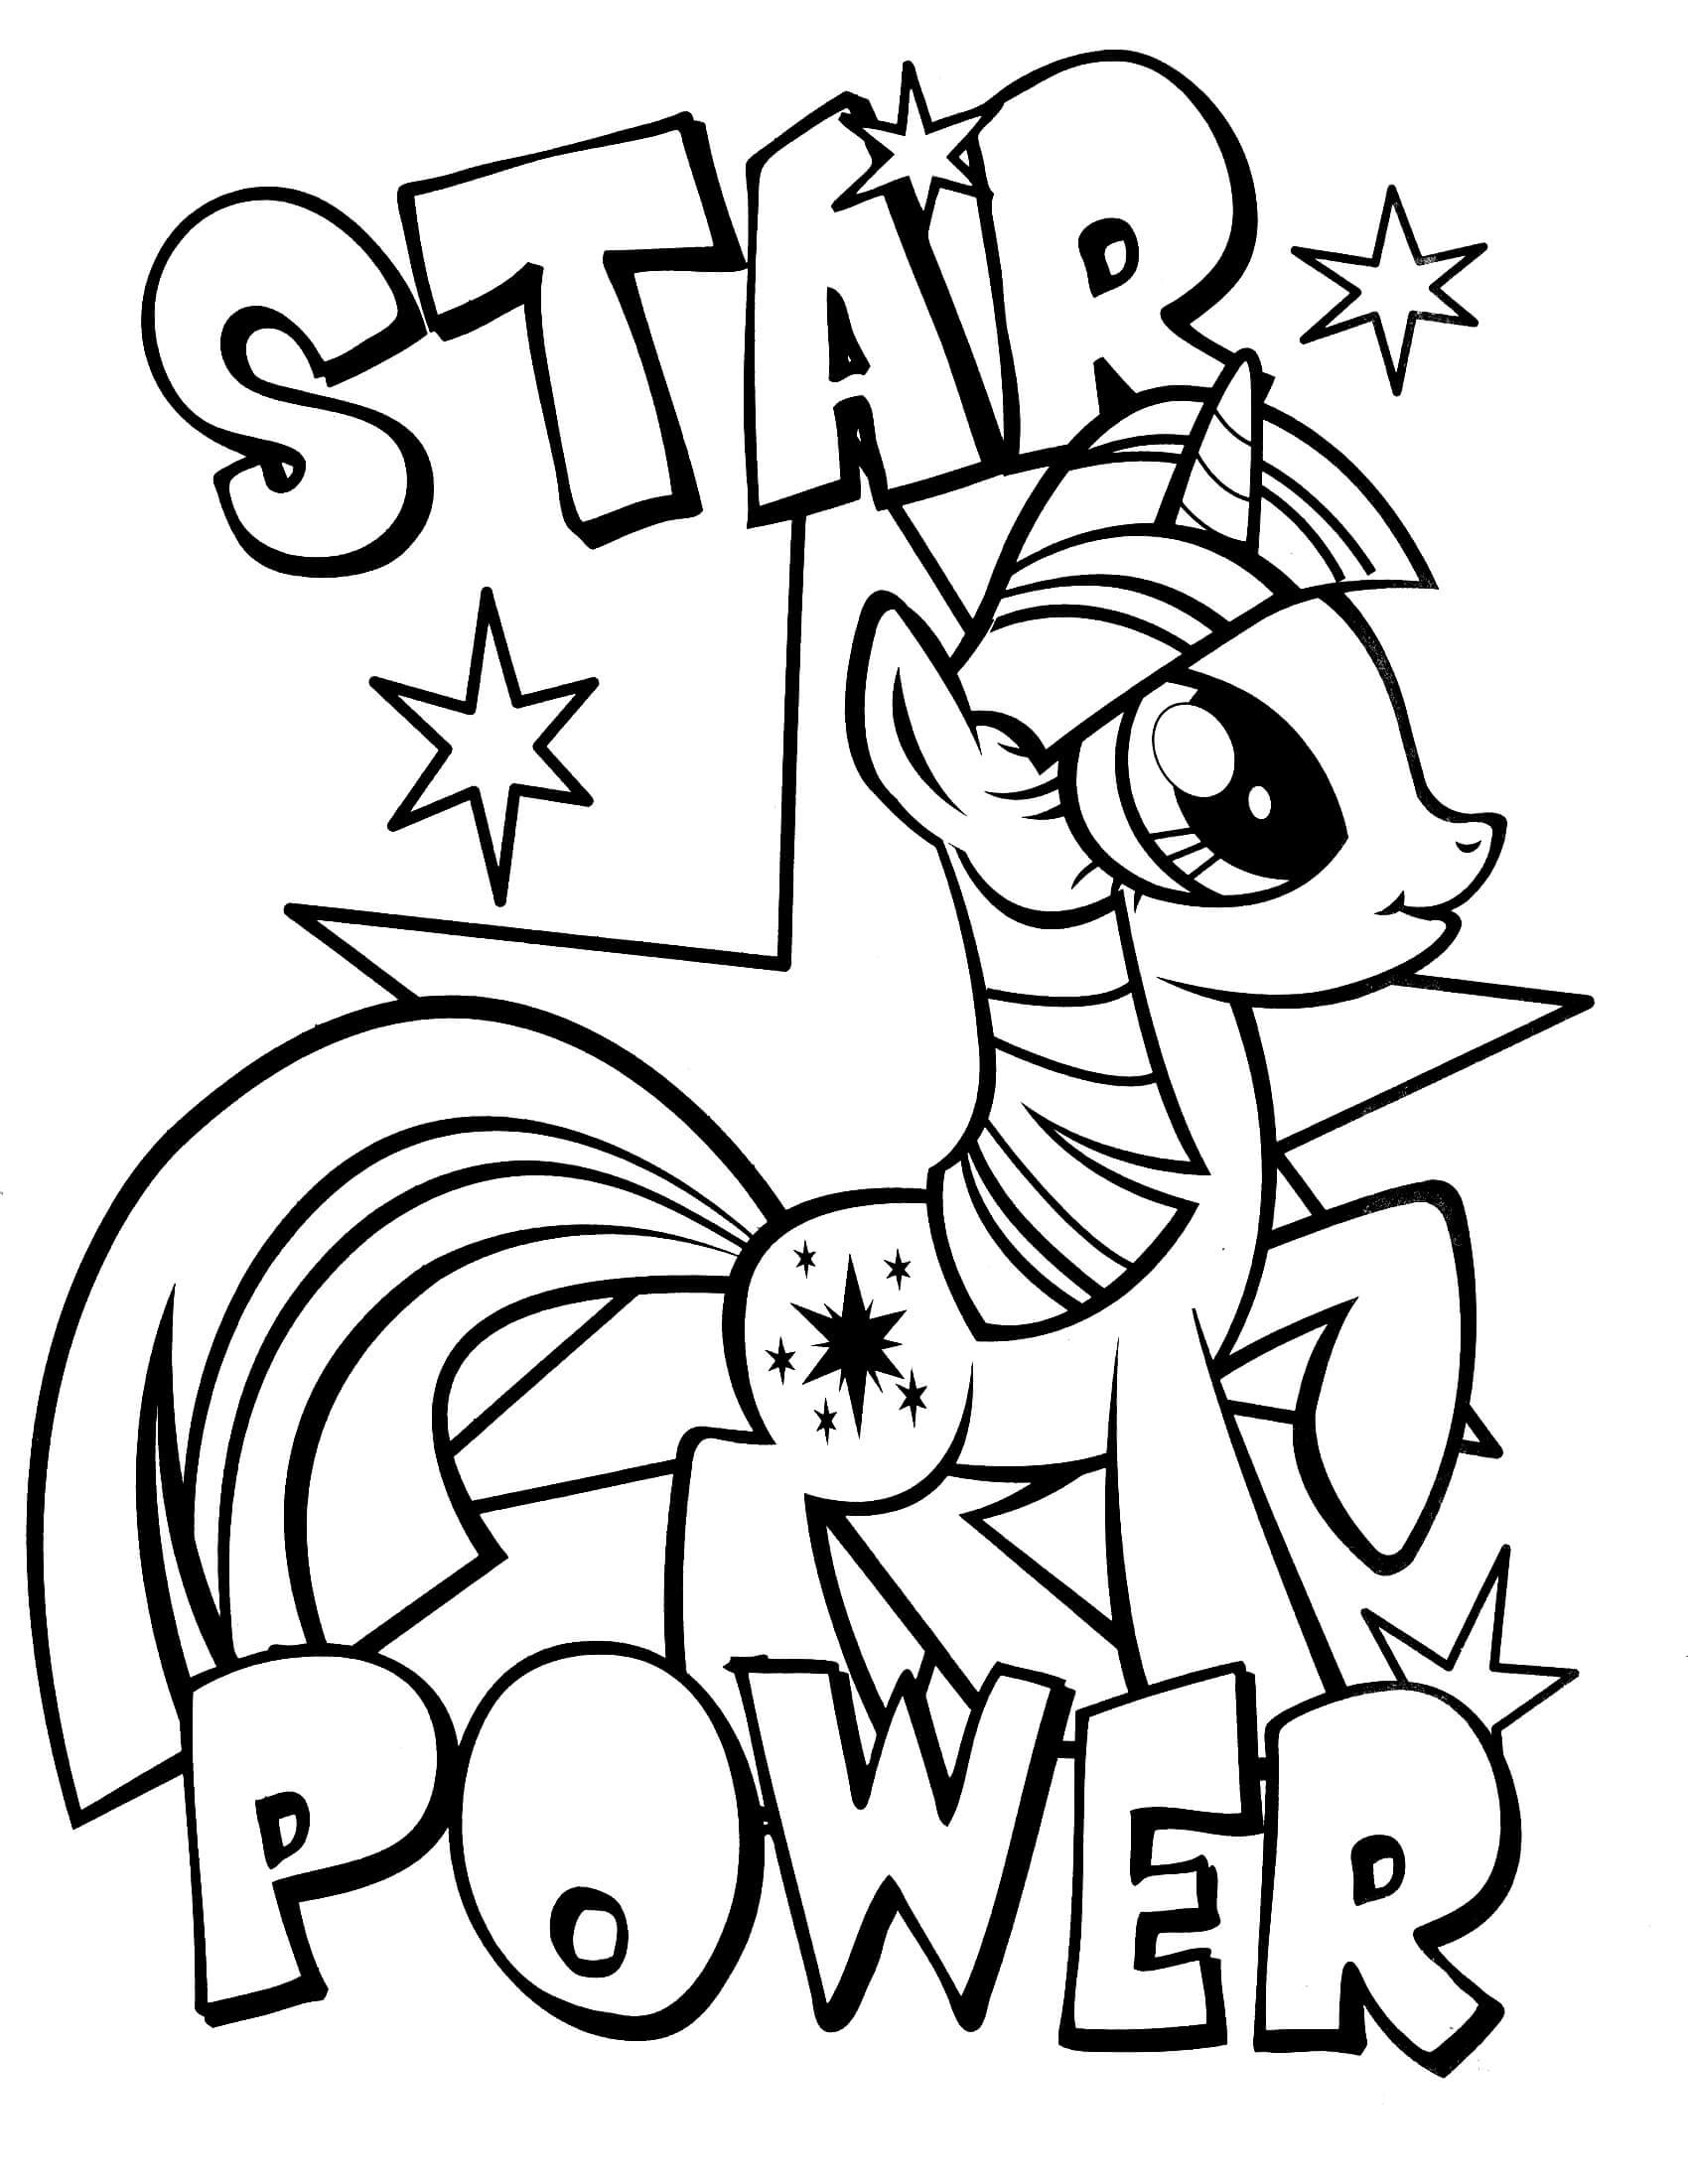 Best ideas about My Little Pony Coloring Pages For Kids . Save or Pin little pony 3 Now.